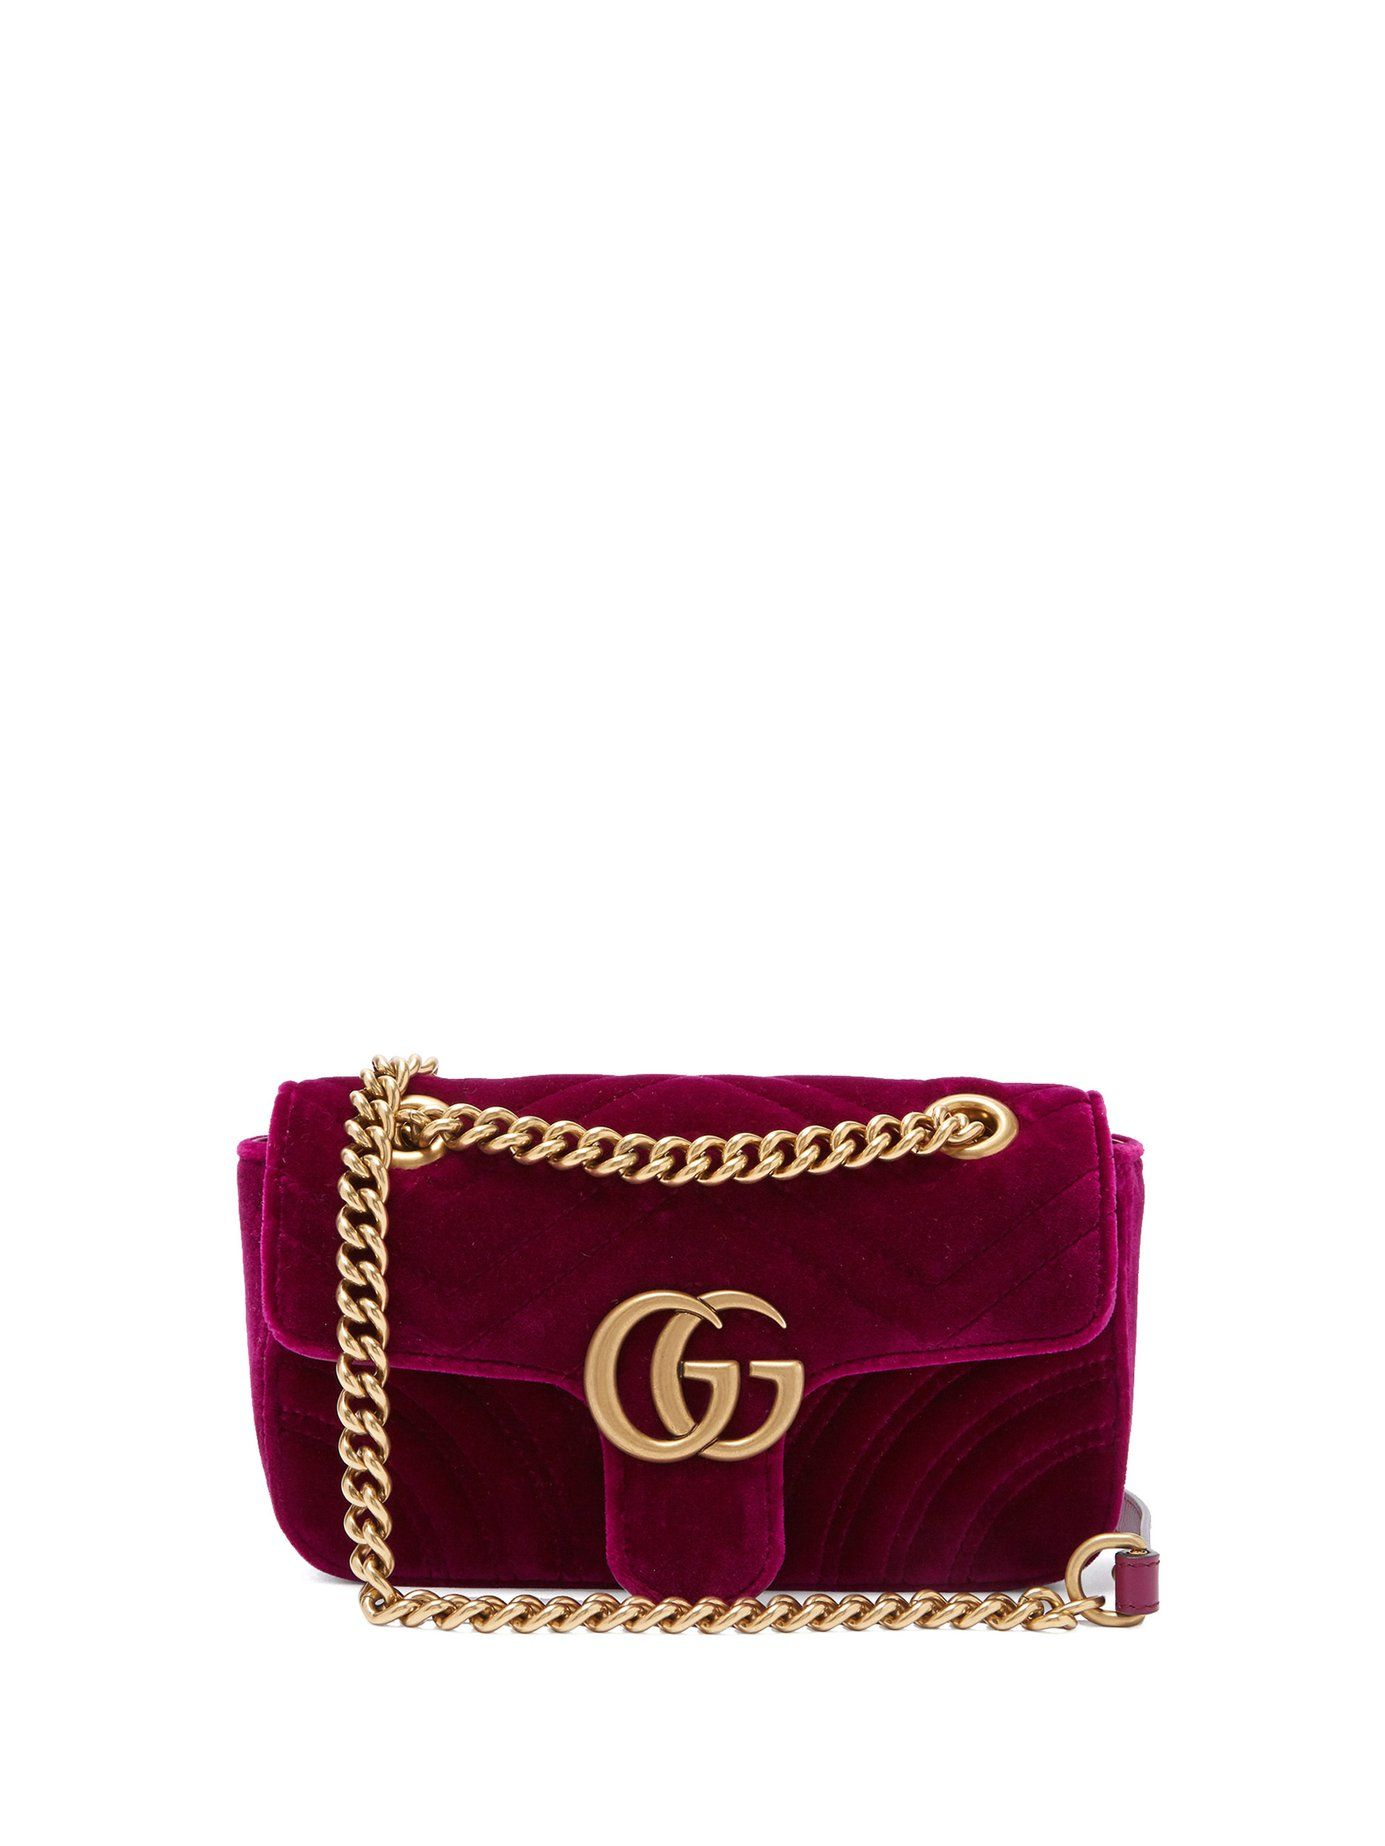 09514f1b8812 GG Marmont mini quilted-velvet cross-body bag | Gucci | MATCHESFASHION.COM  US